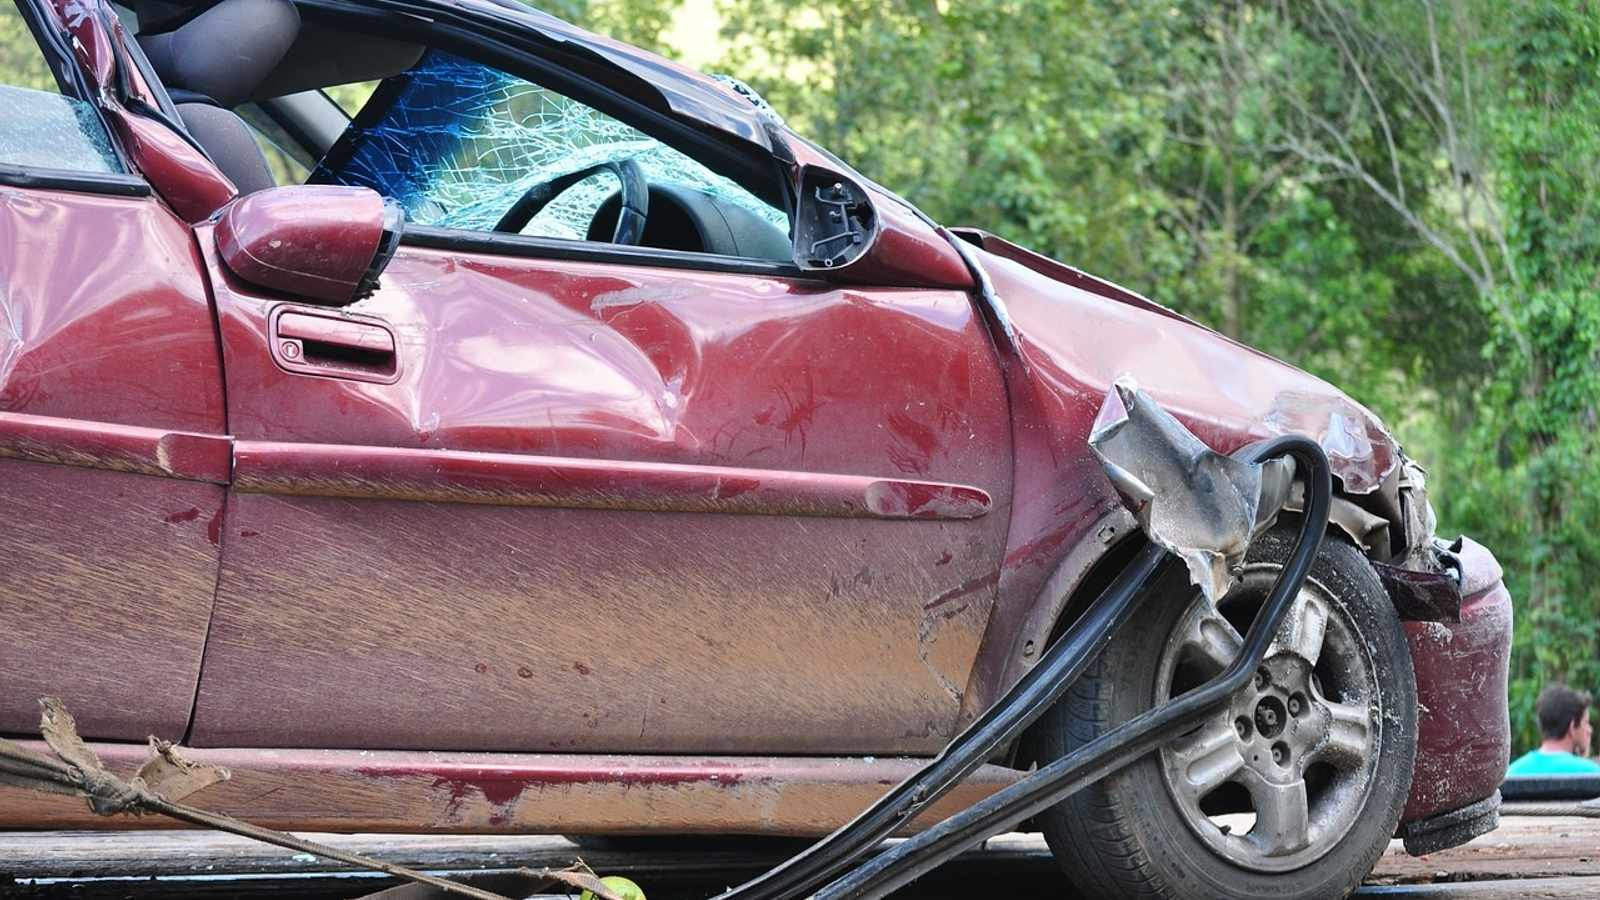 The reality of road accidents in South Africa